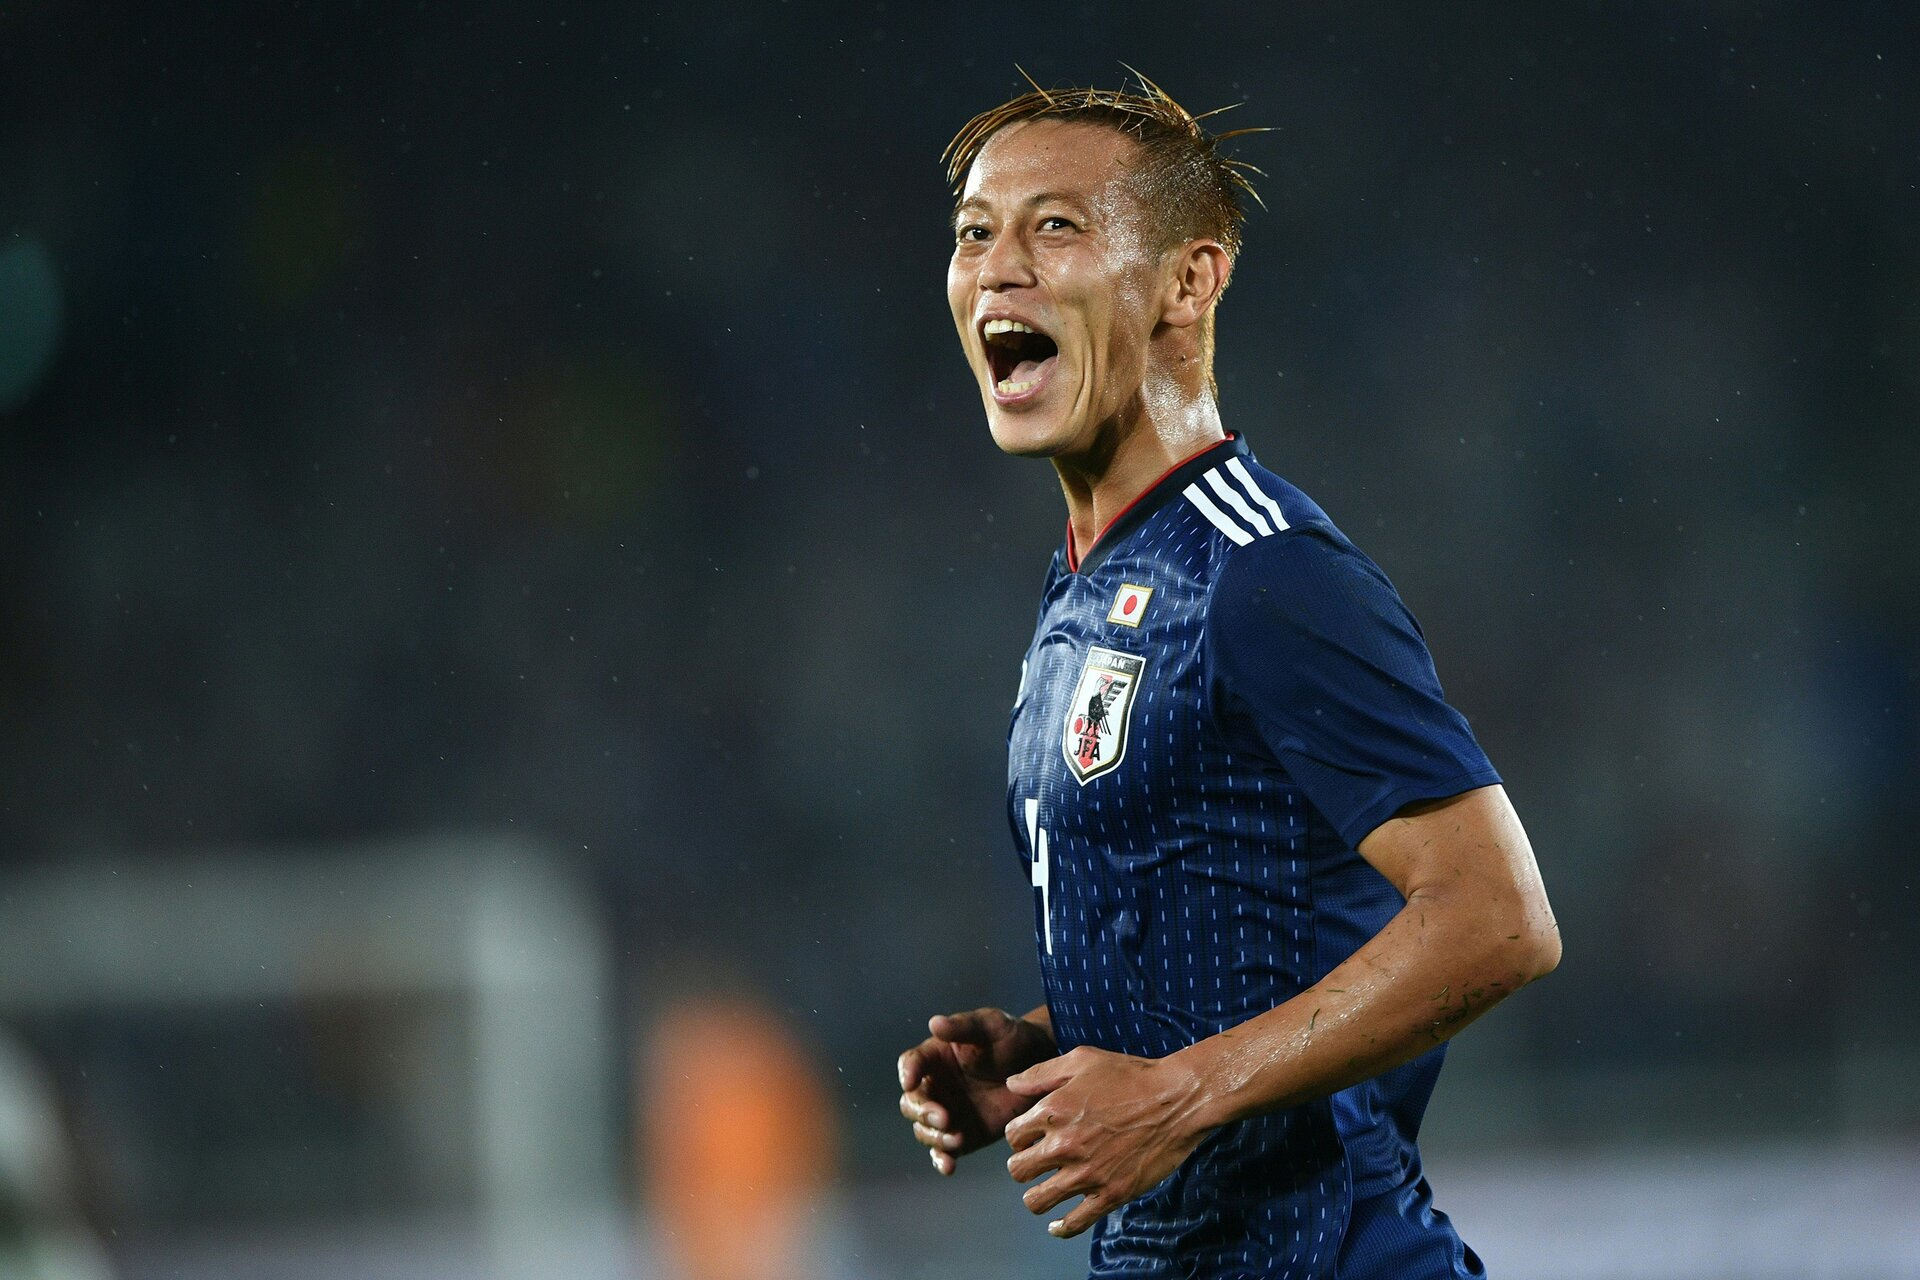 Japan's National football team midfielder Keisuke Honda reacts after missing a goal, during their international friendly football match between Japan and Ghana at the Nissan stadium in Yokohama, on May 30, 2018. (Photo by Martin BUREAU / AFP)        (Photo credit should read MARTIN BUREAU/AFP/Getty Images)